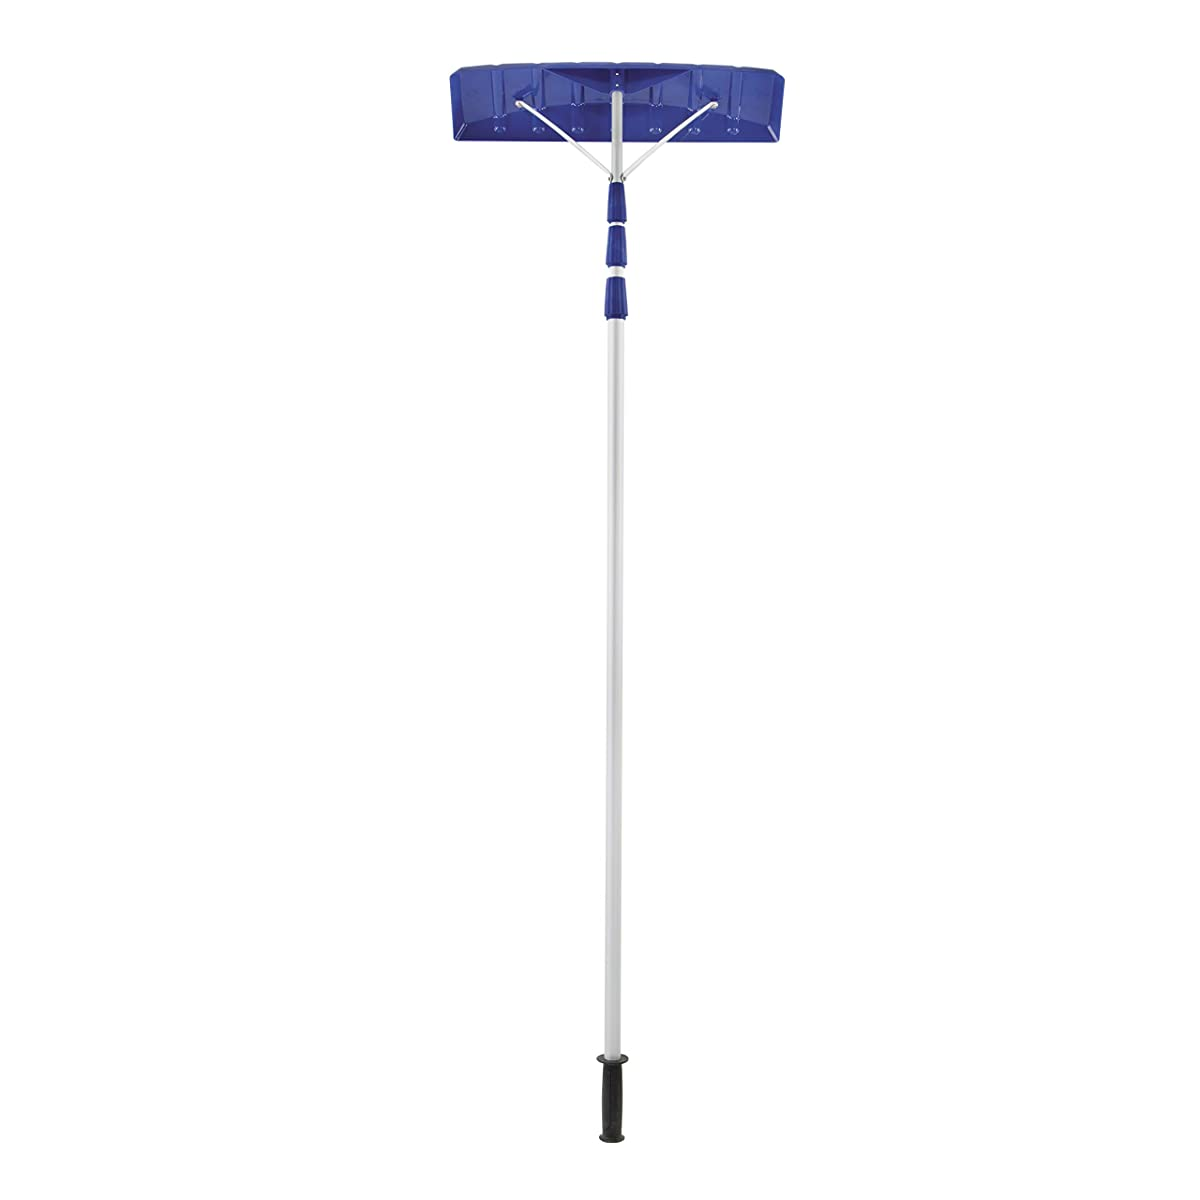 "Snow Joe RJ204M 21 Twist-n-Lock Telescoping Snow Shovel Roof Rake with 6"" by 25"" Poly Blade"